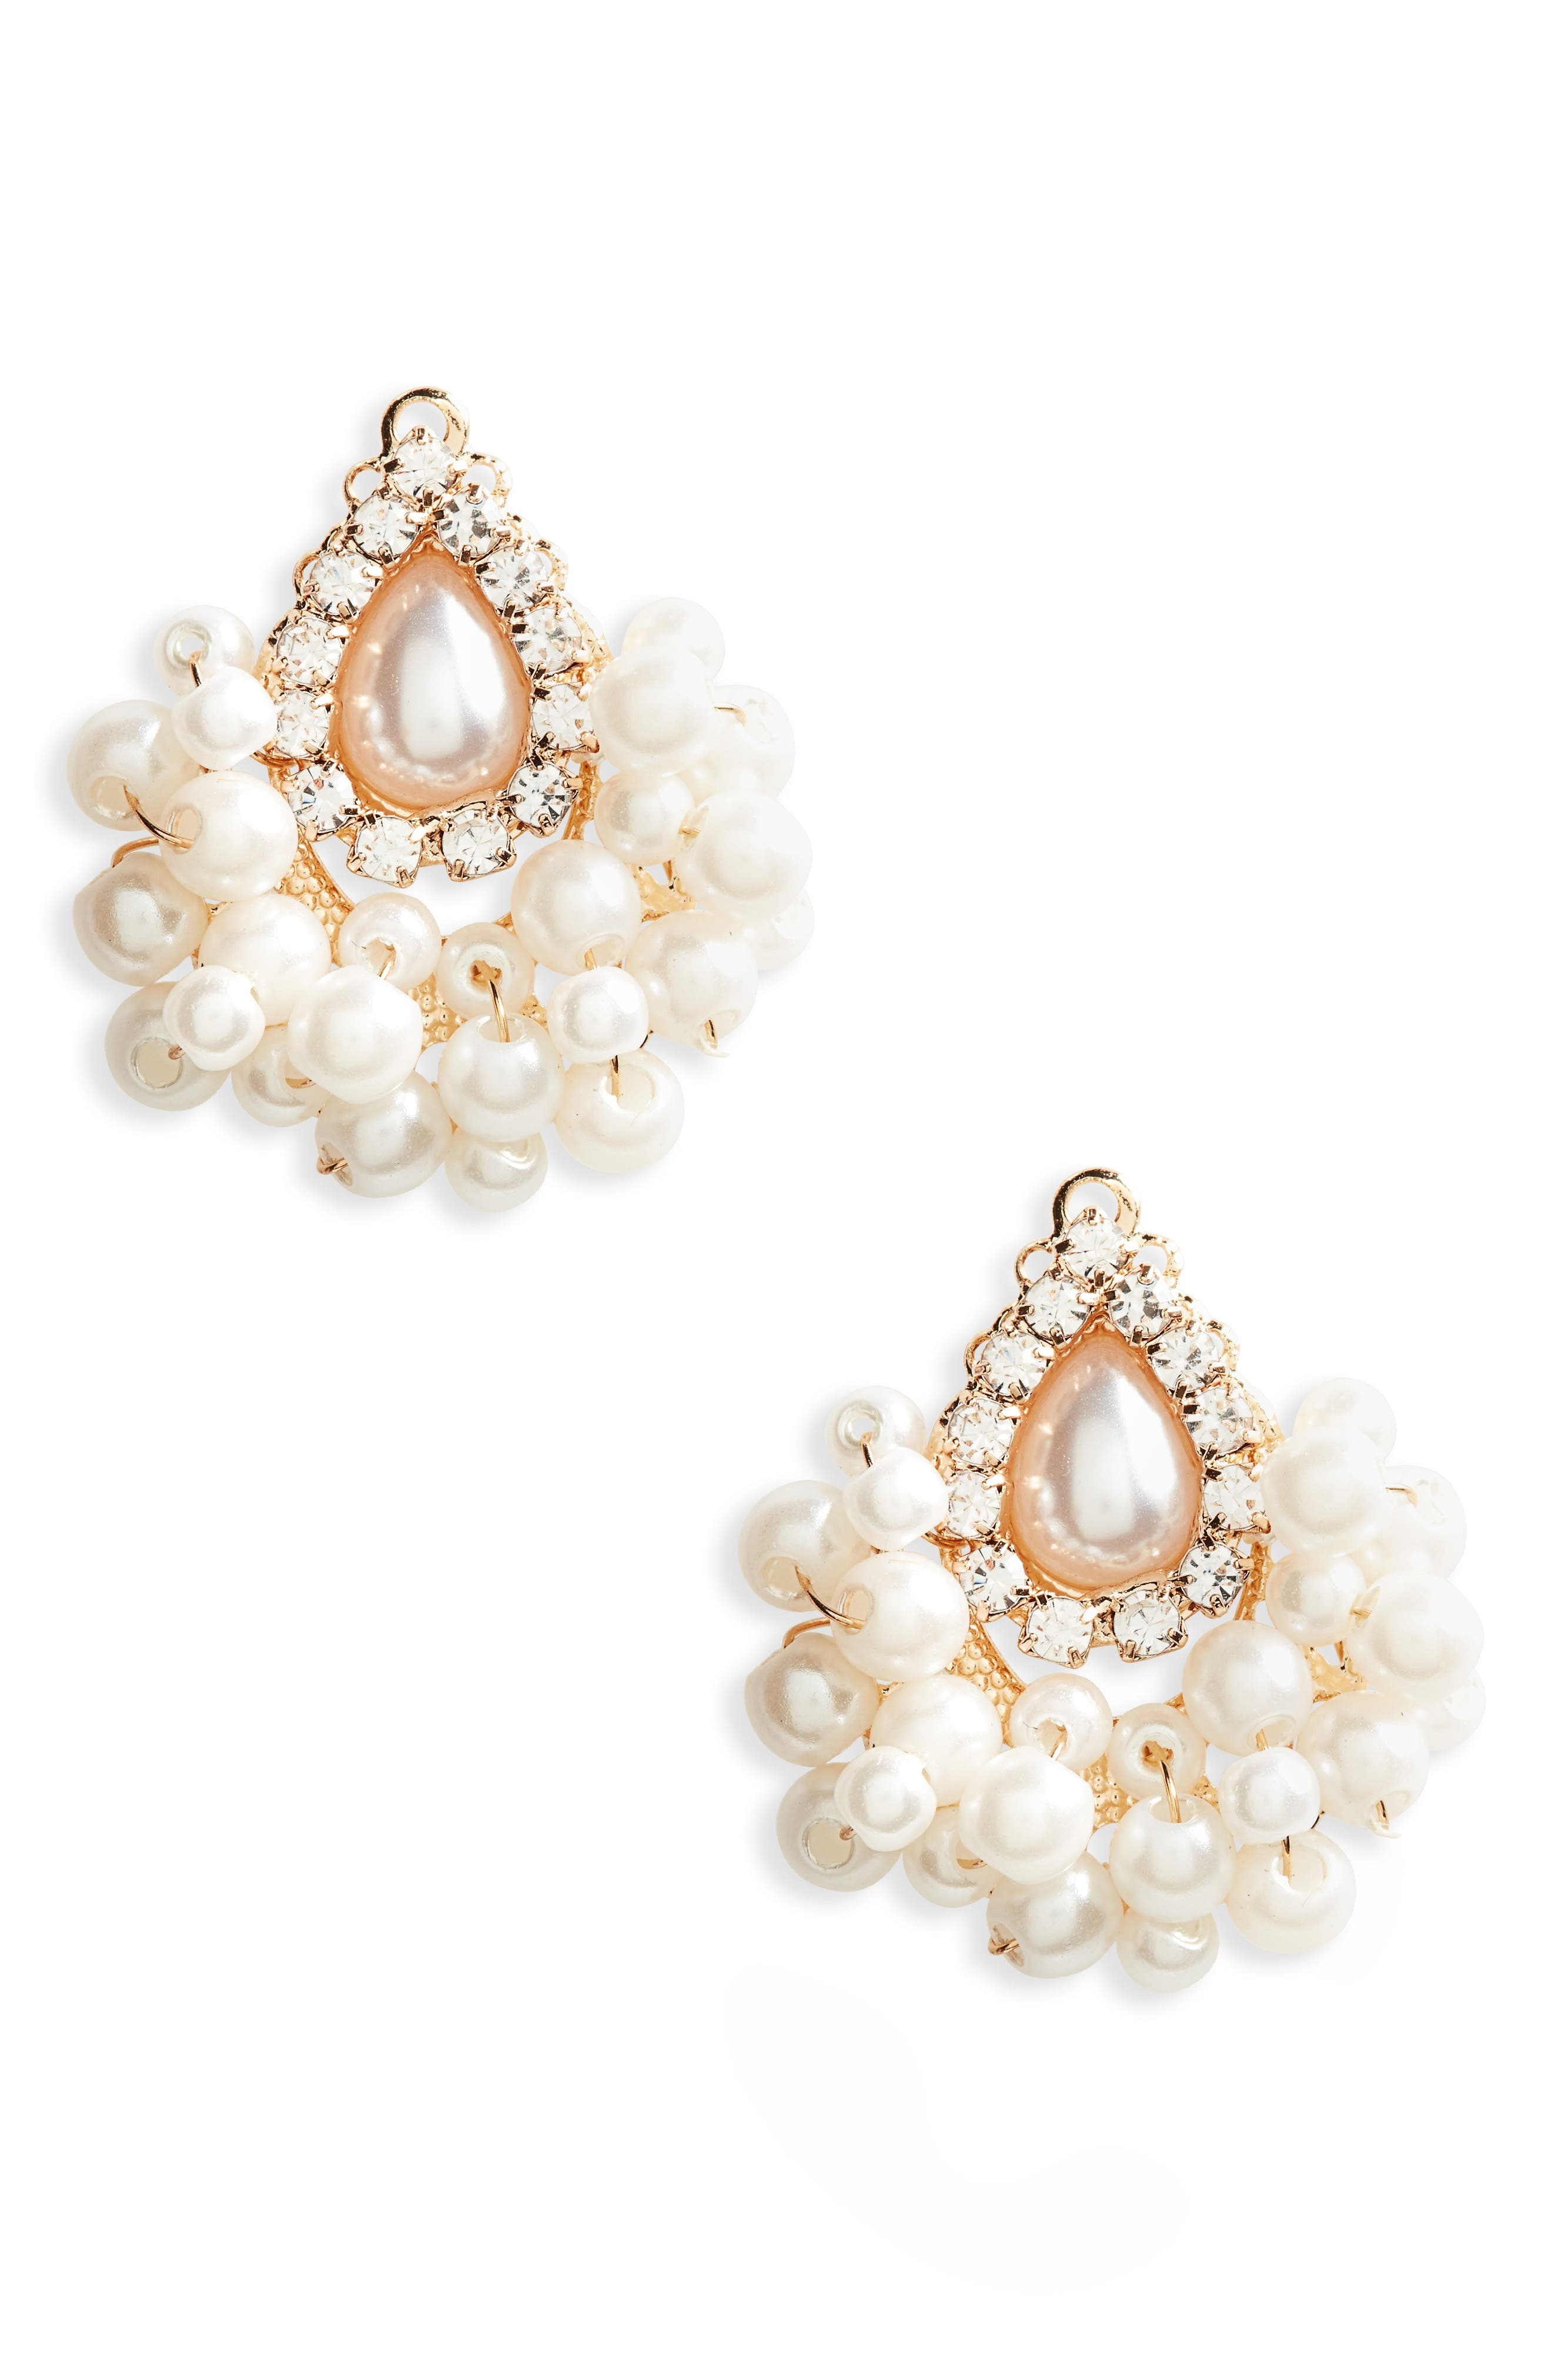 Imitation Pearl Cluster Earrings,                             Main thumbnail 1, color,                             Gold/ White